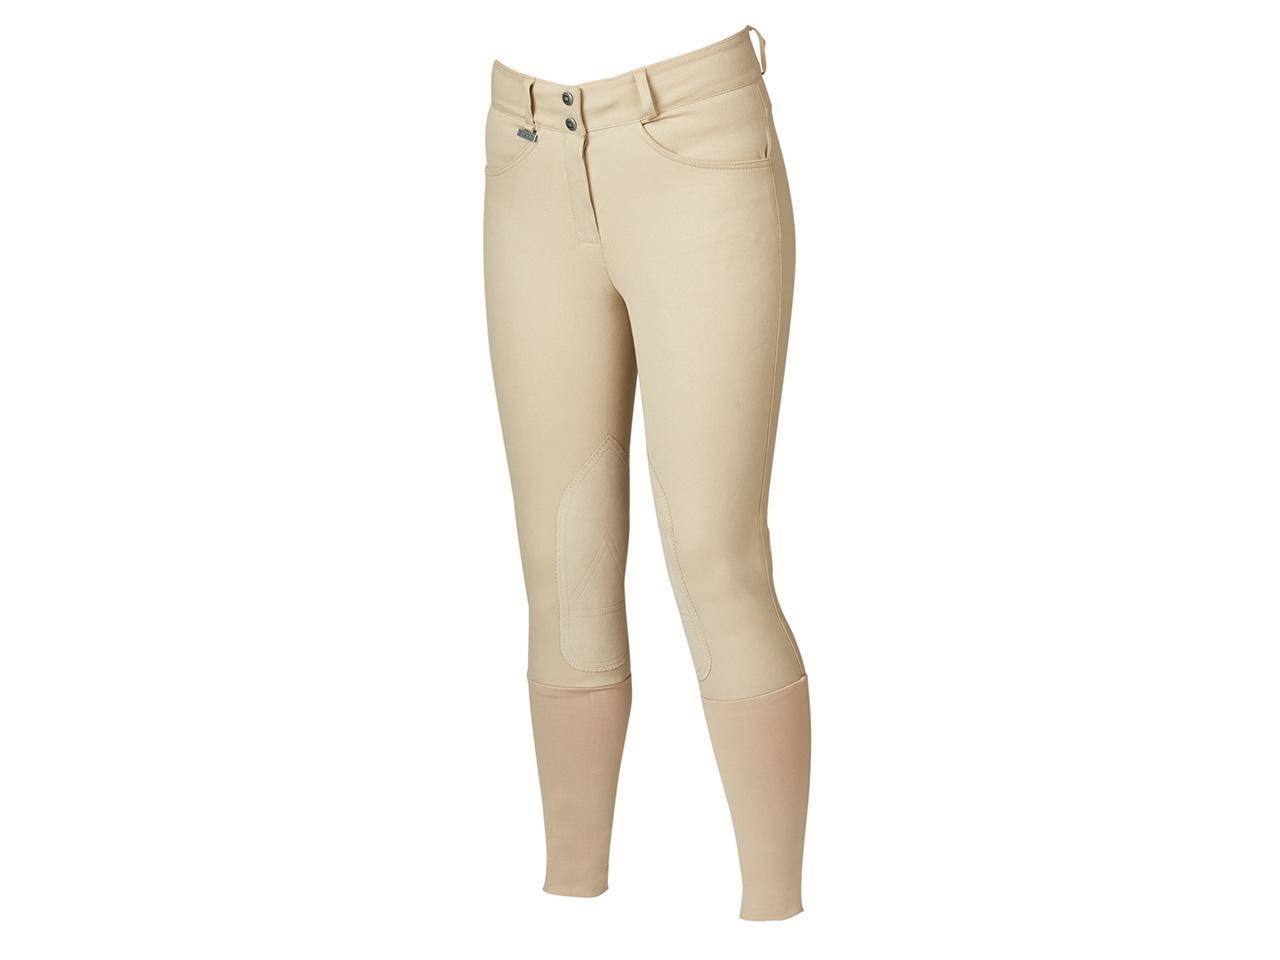 Dublin Active Adjustable Waist Breeches - Kids, EuroSeat